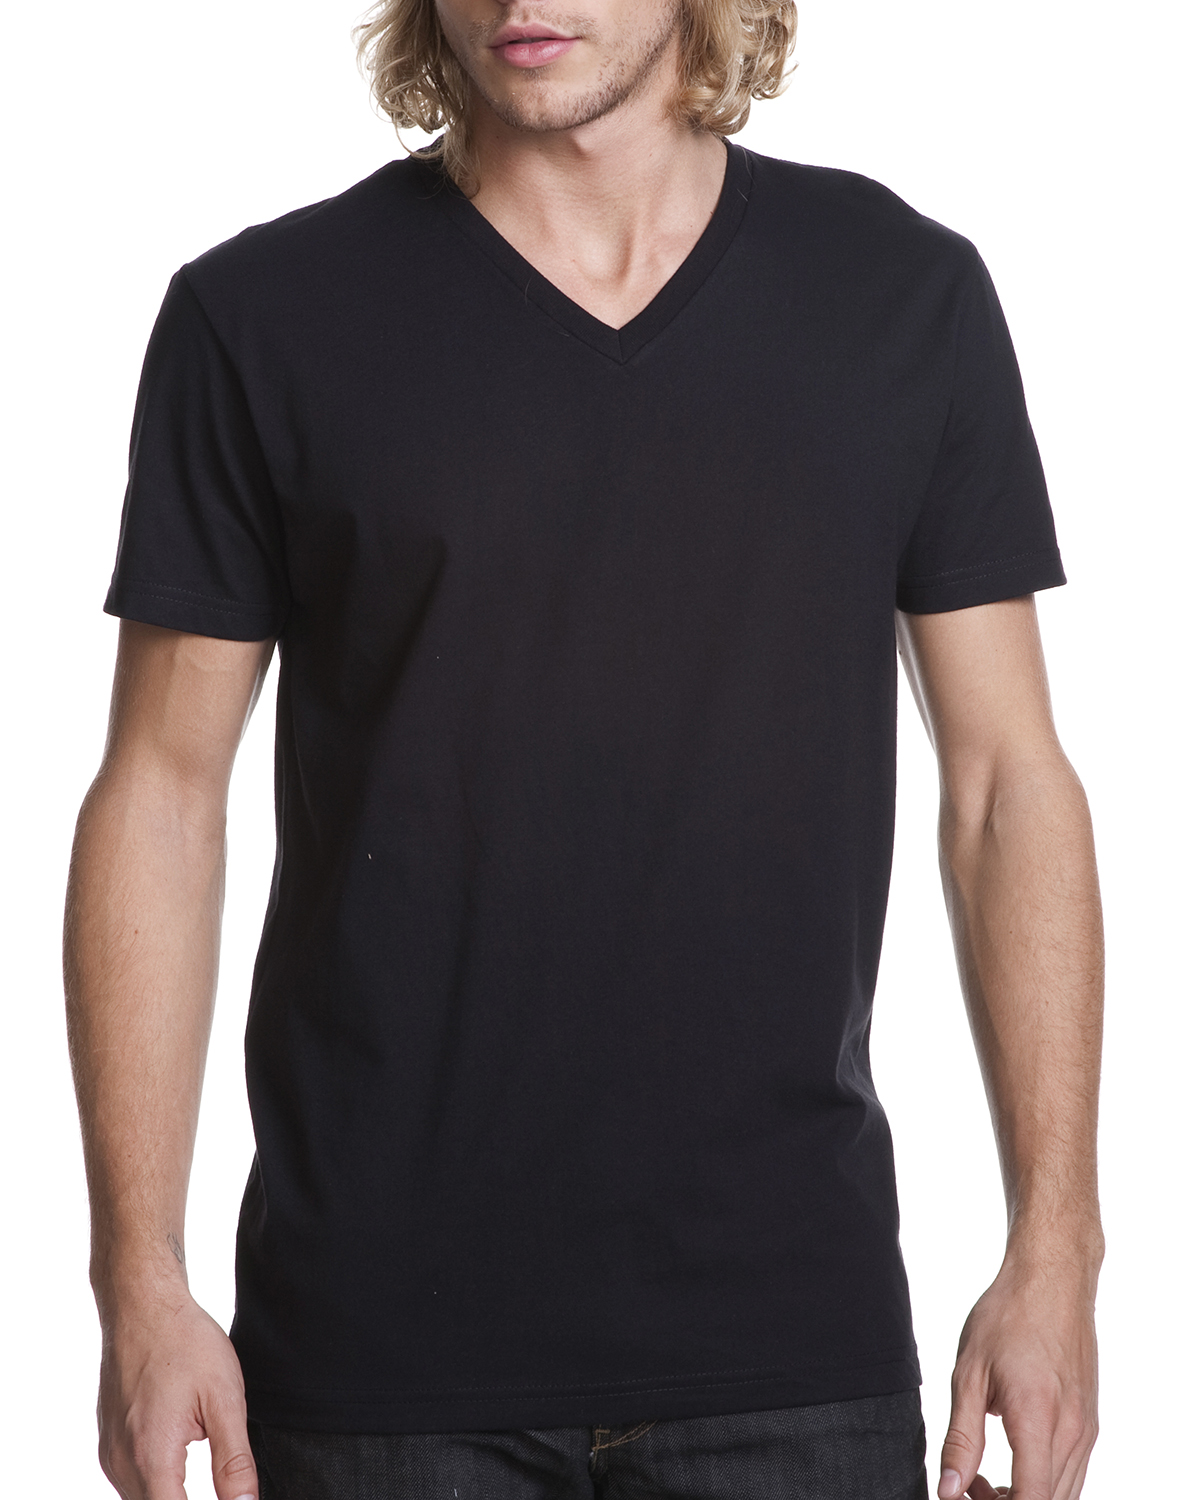 Next Level 3200 - Cotton Short Sleeve V